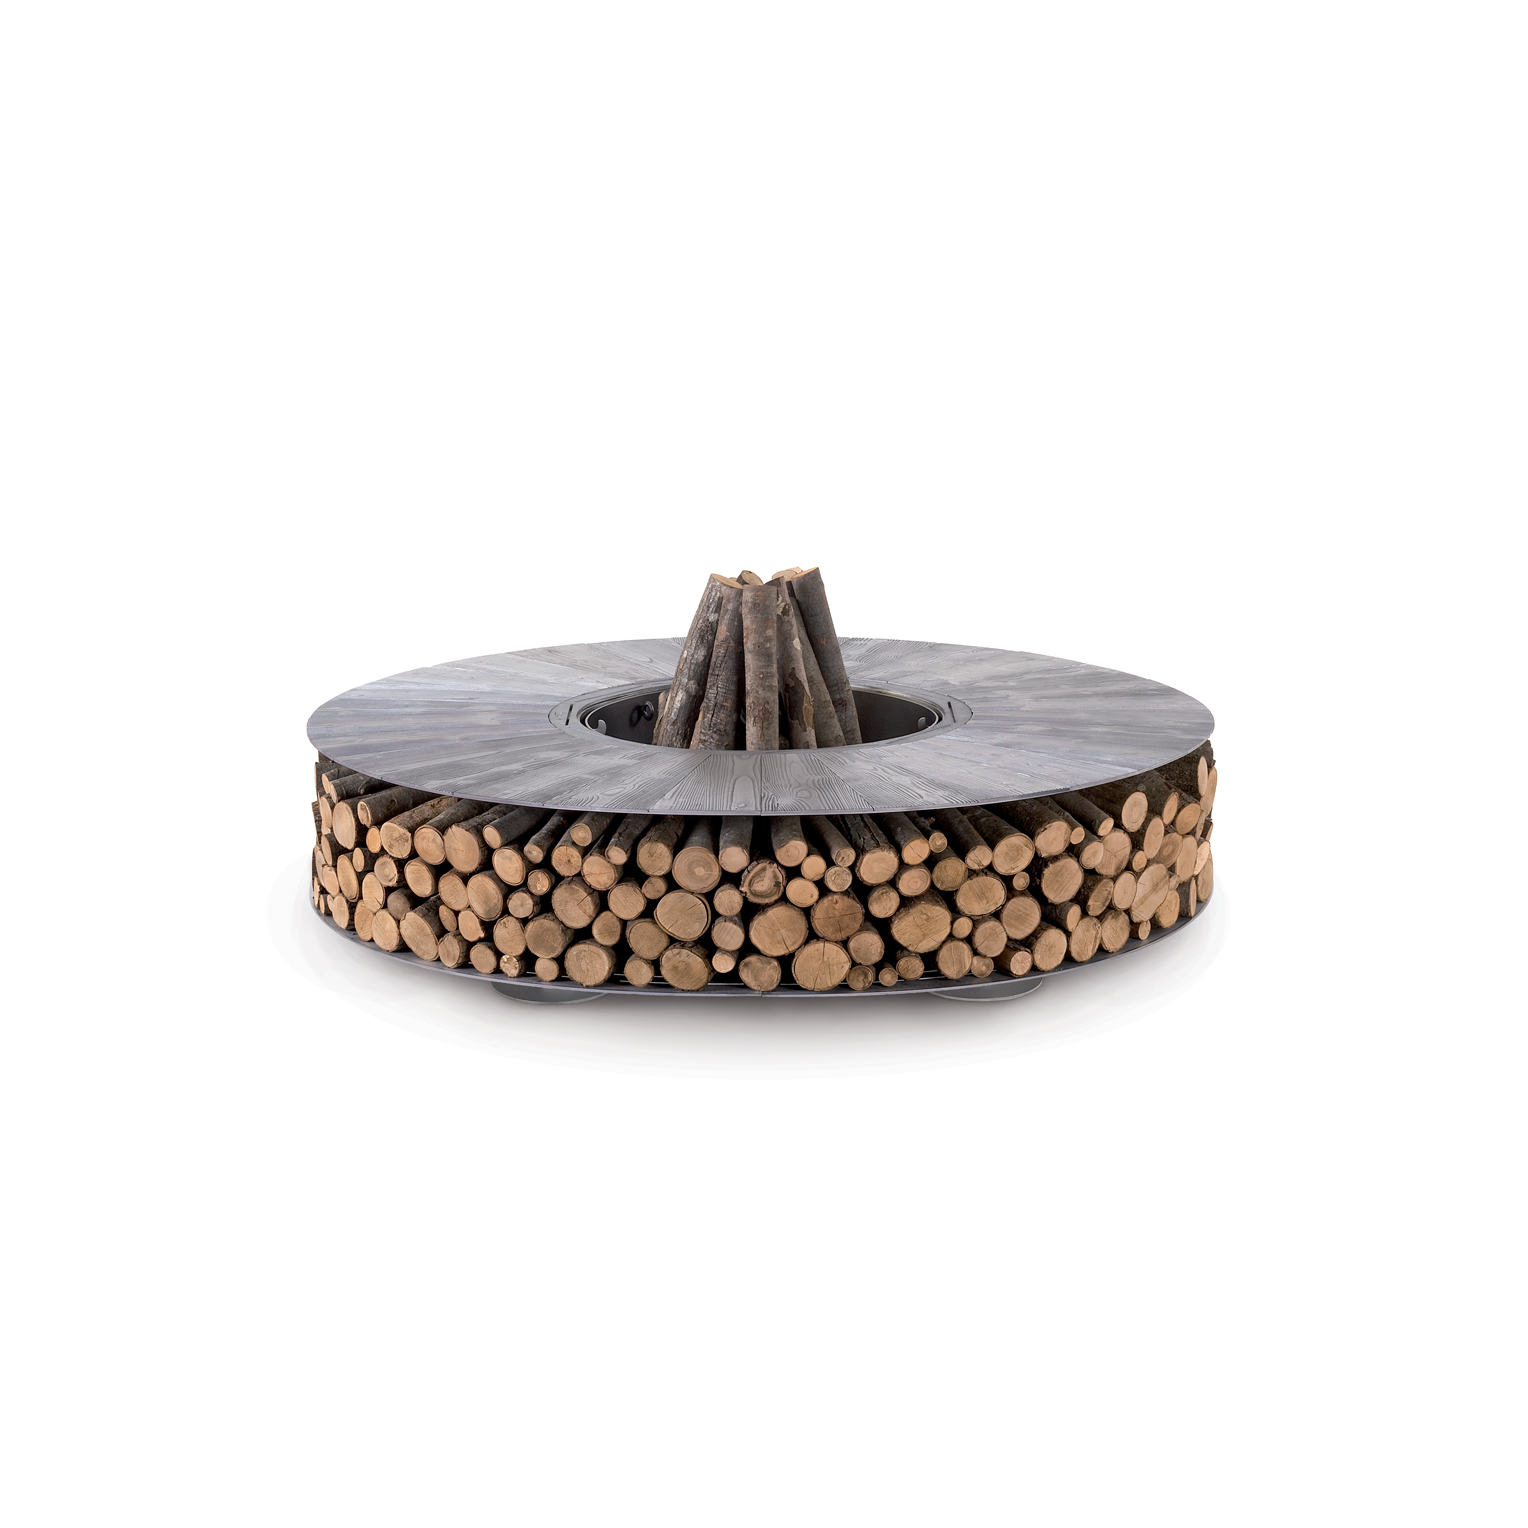 Zero aluminium Outdoor Design fire pit